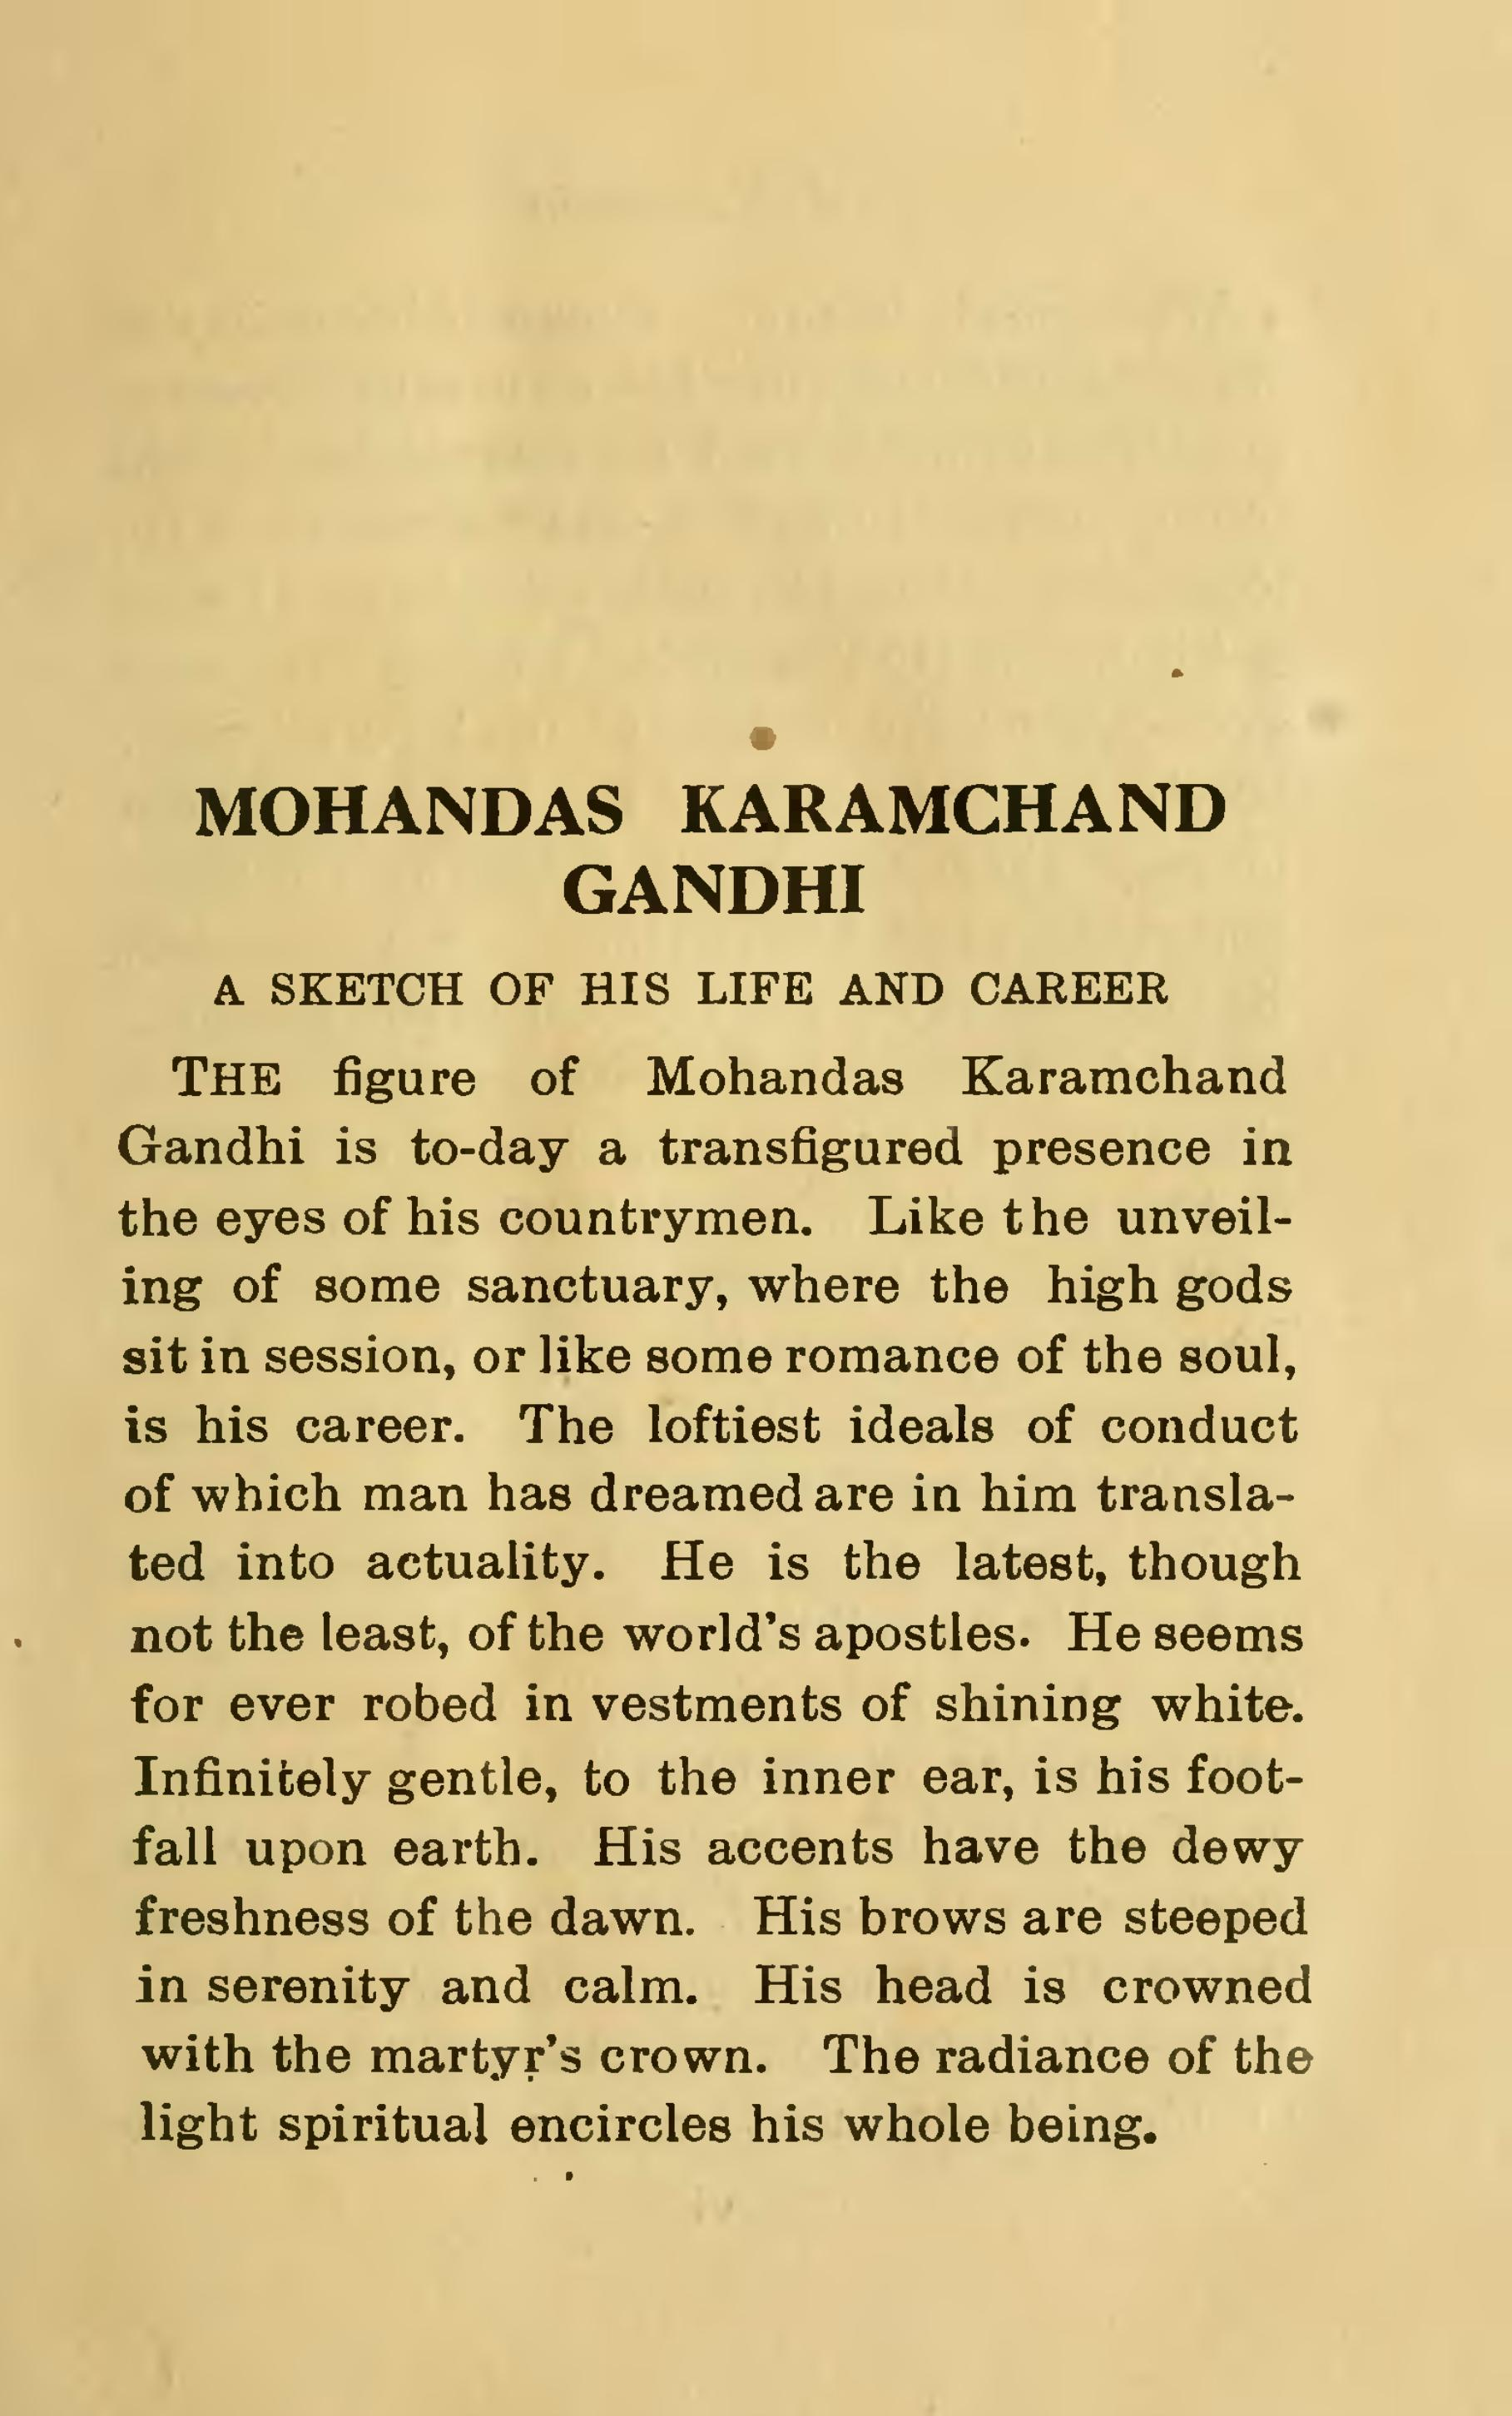 Mahatma gandhi writings